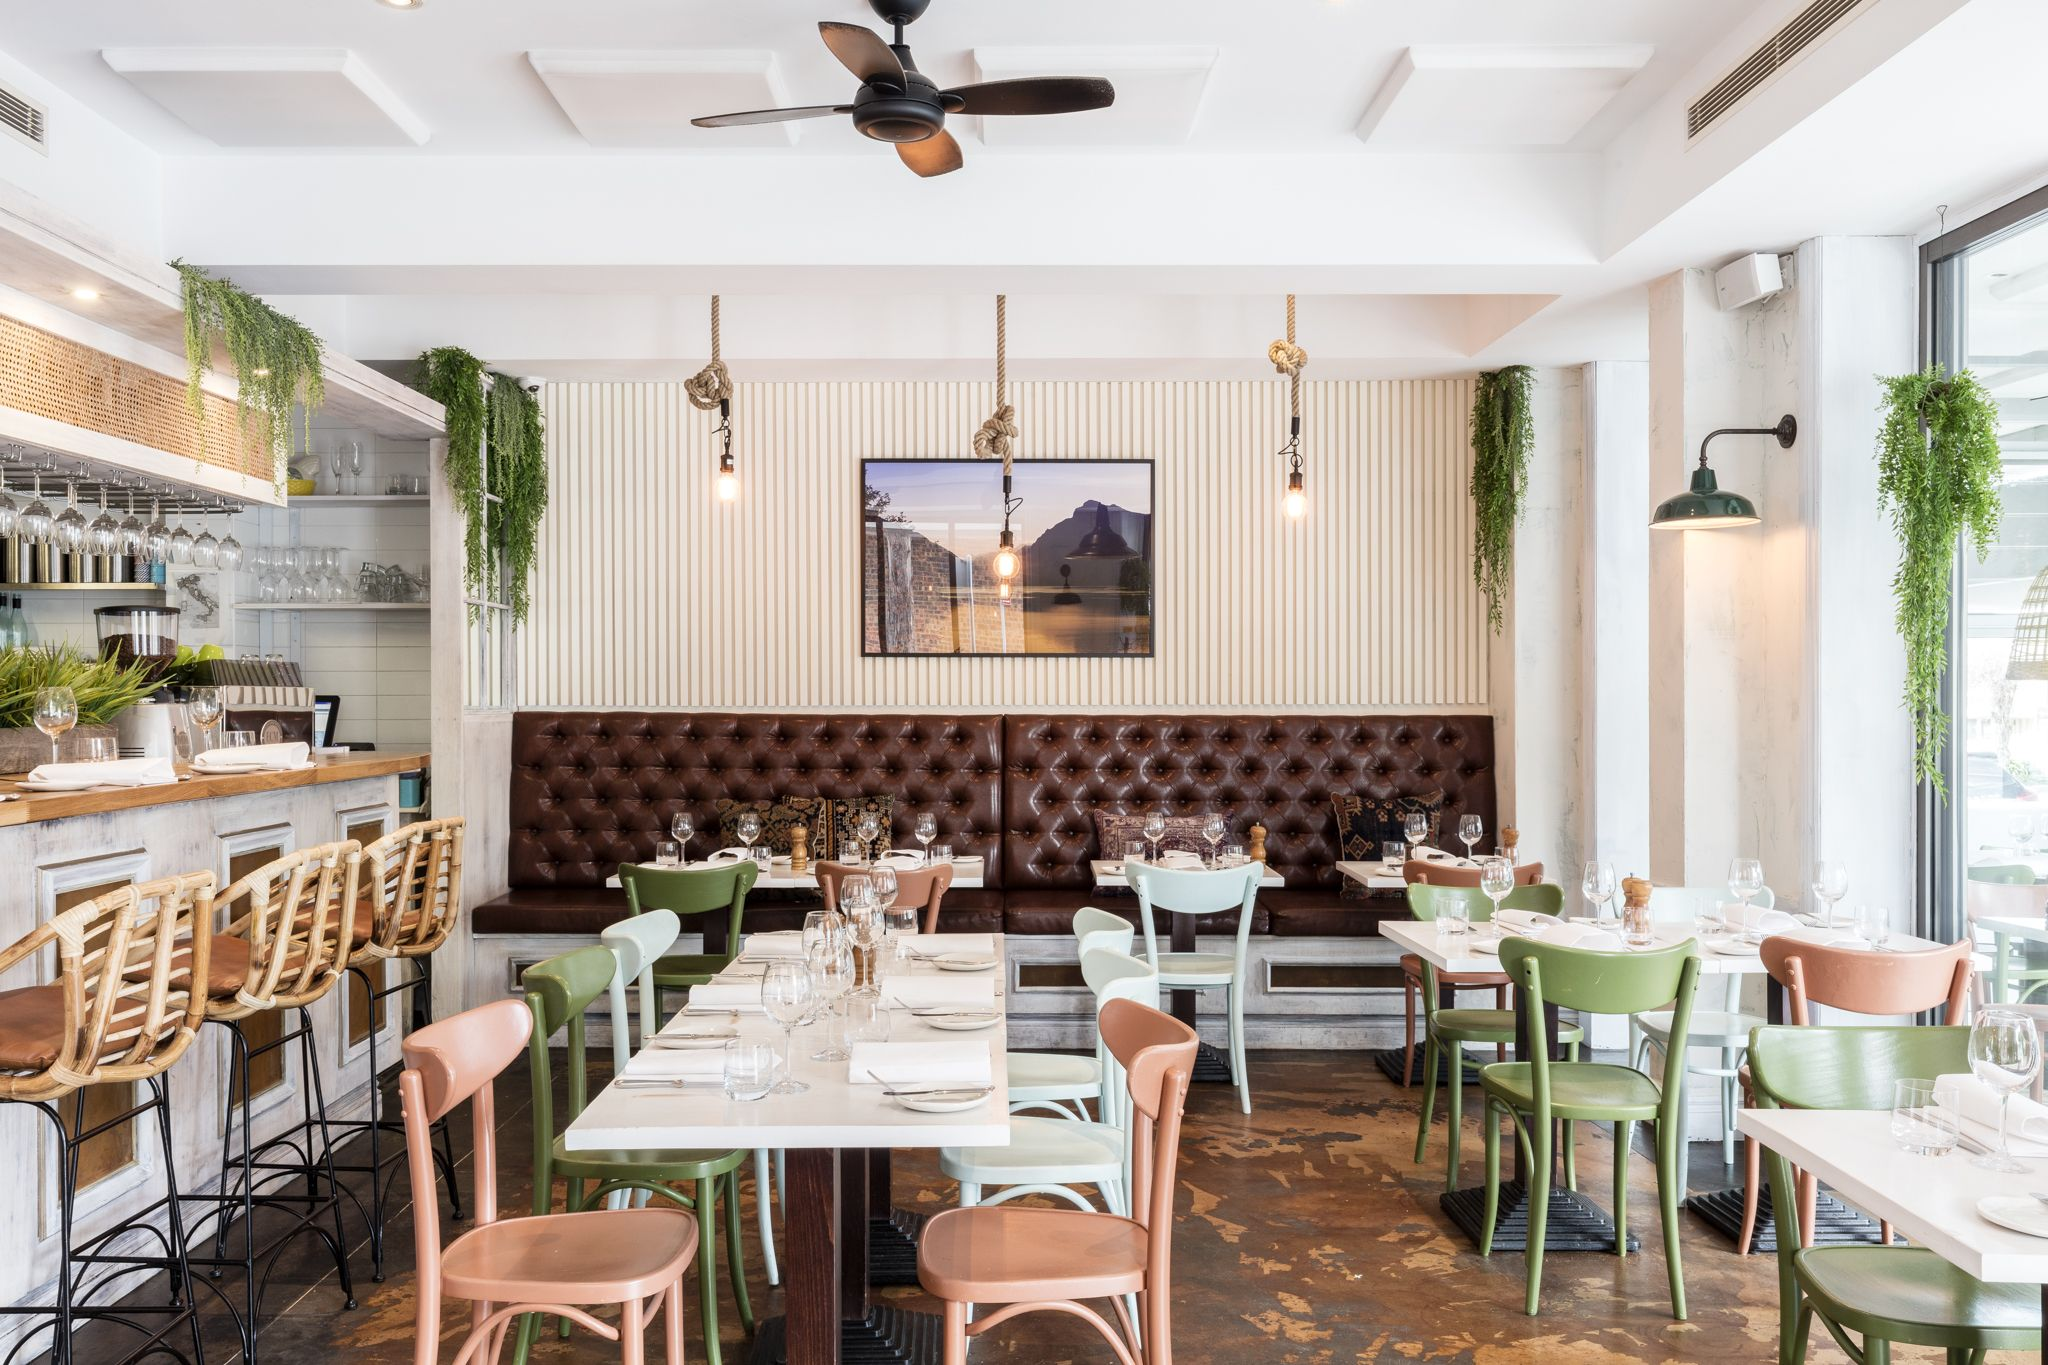 VIA ALTA Commercial Restaurant Interior Design By THE DESIGNORY A Classic Neighbourhood Italian Trattoria In North Willoughby Via Alta Meaning High